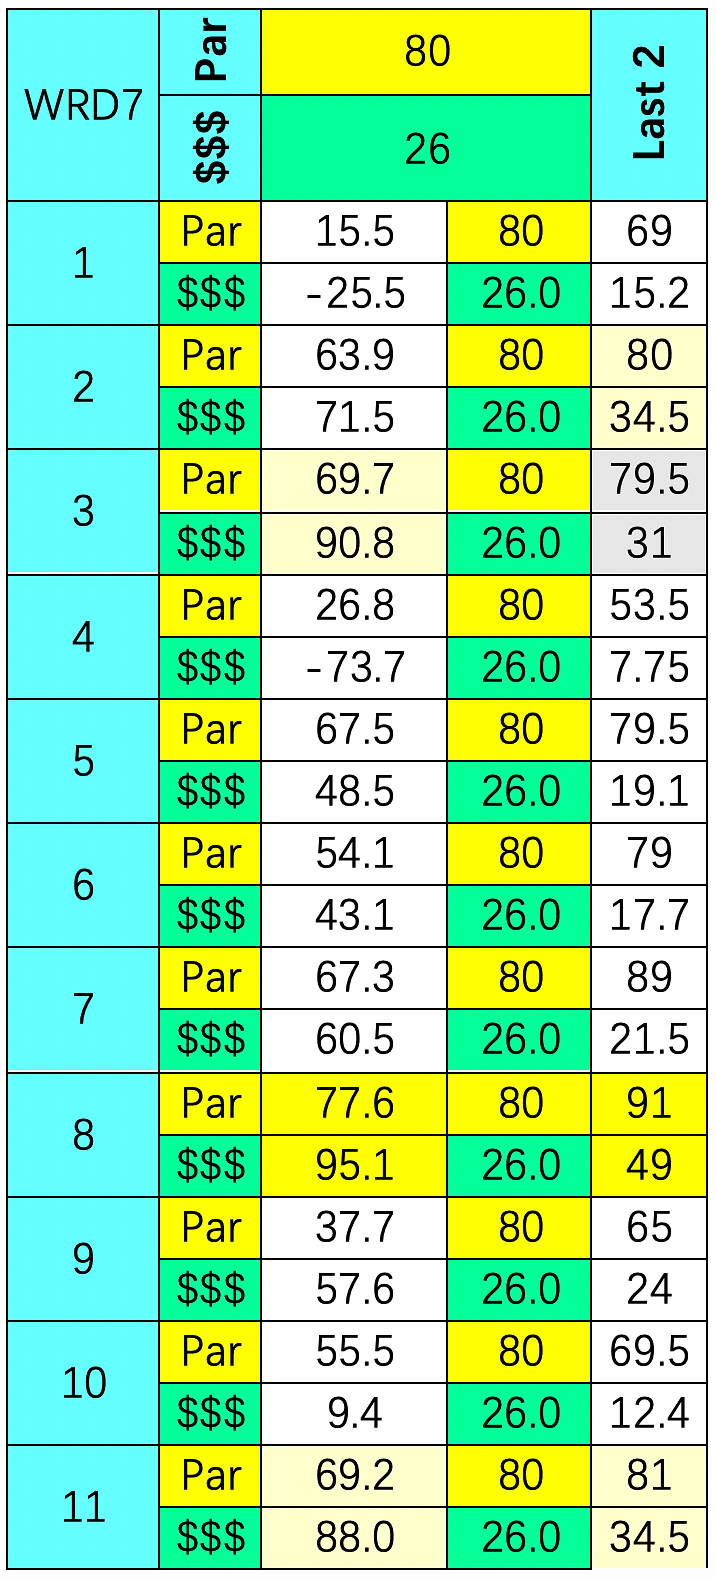 SmartCap analysis of the 7th at Will Rogers Downs on 4/20/2020